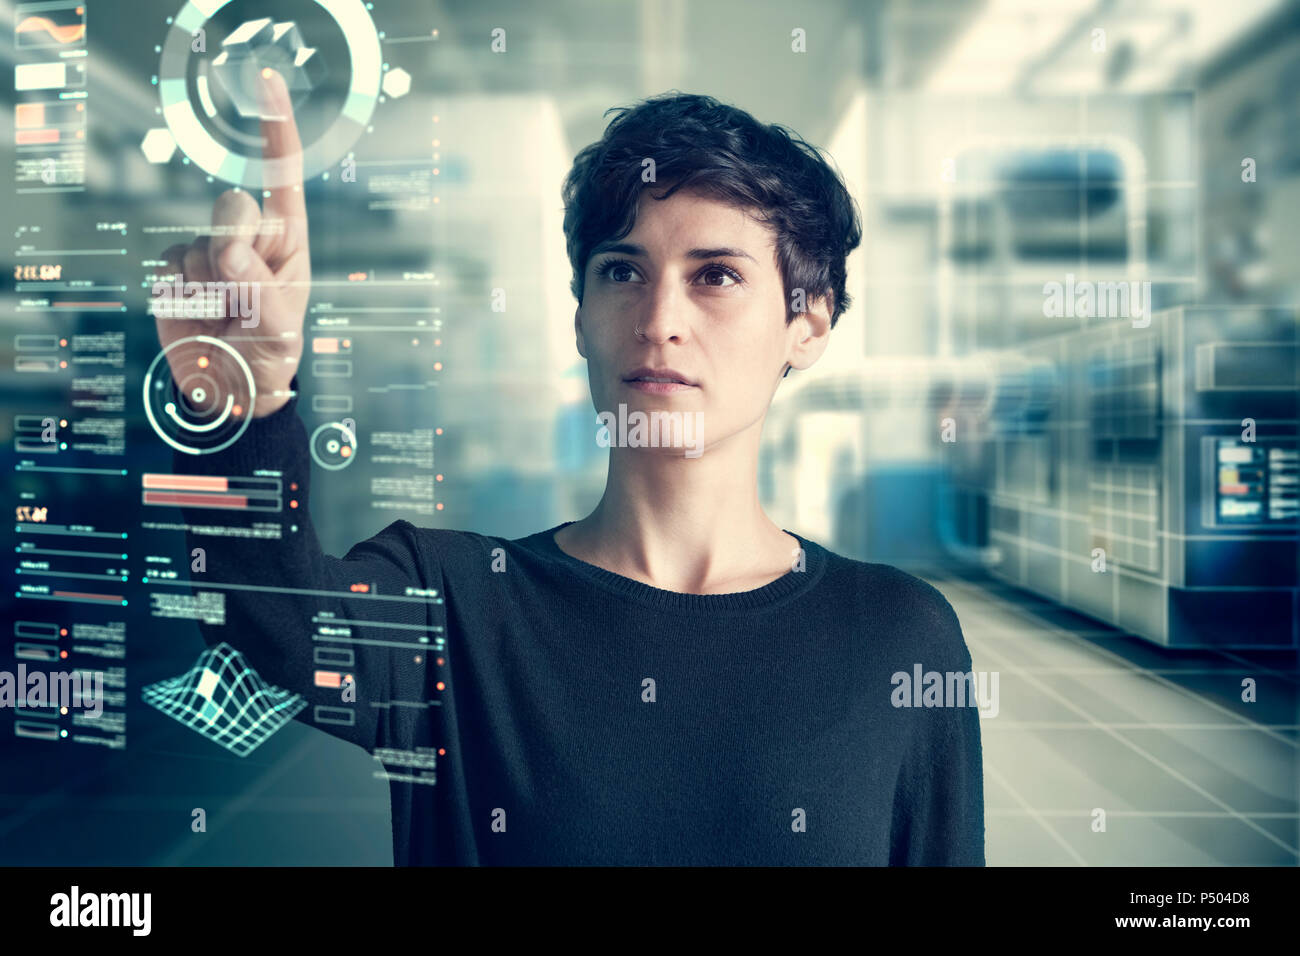 Young woman using transparent touchscreen display, Composing - Stock Image